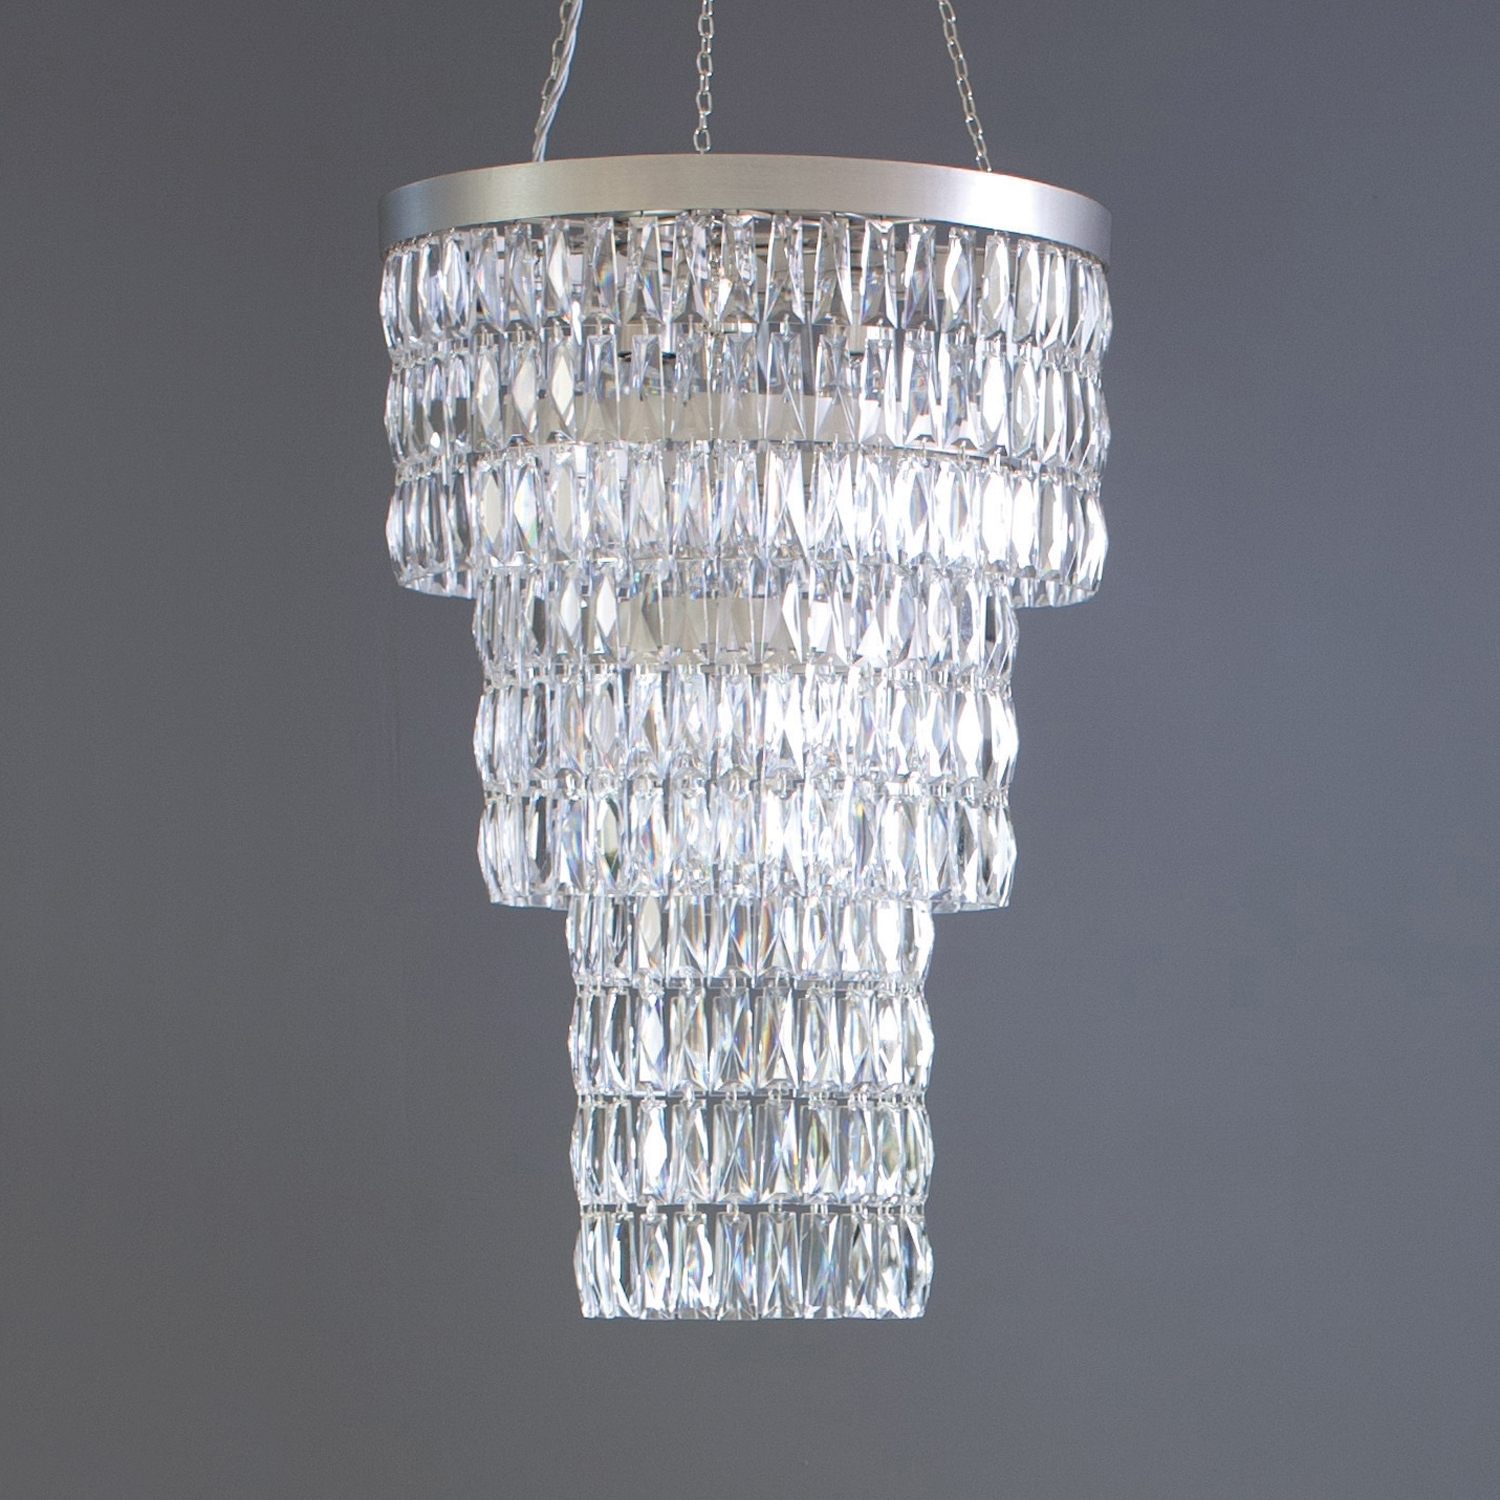 Long Chandelier Within Trendy Clear Crystal Long Chandelier – Tigermoth Lighting (View 8 of 15)